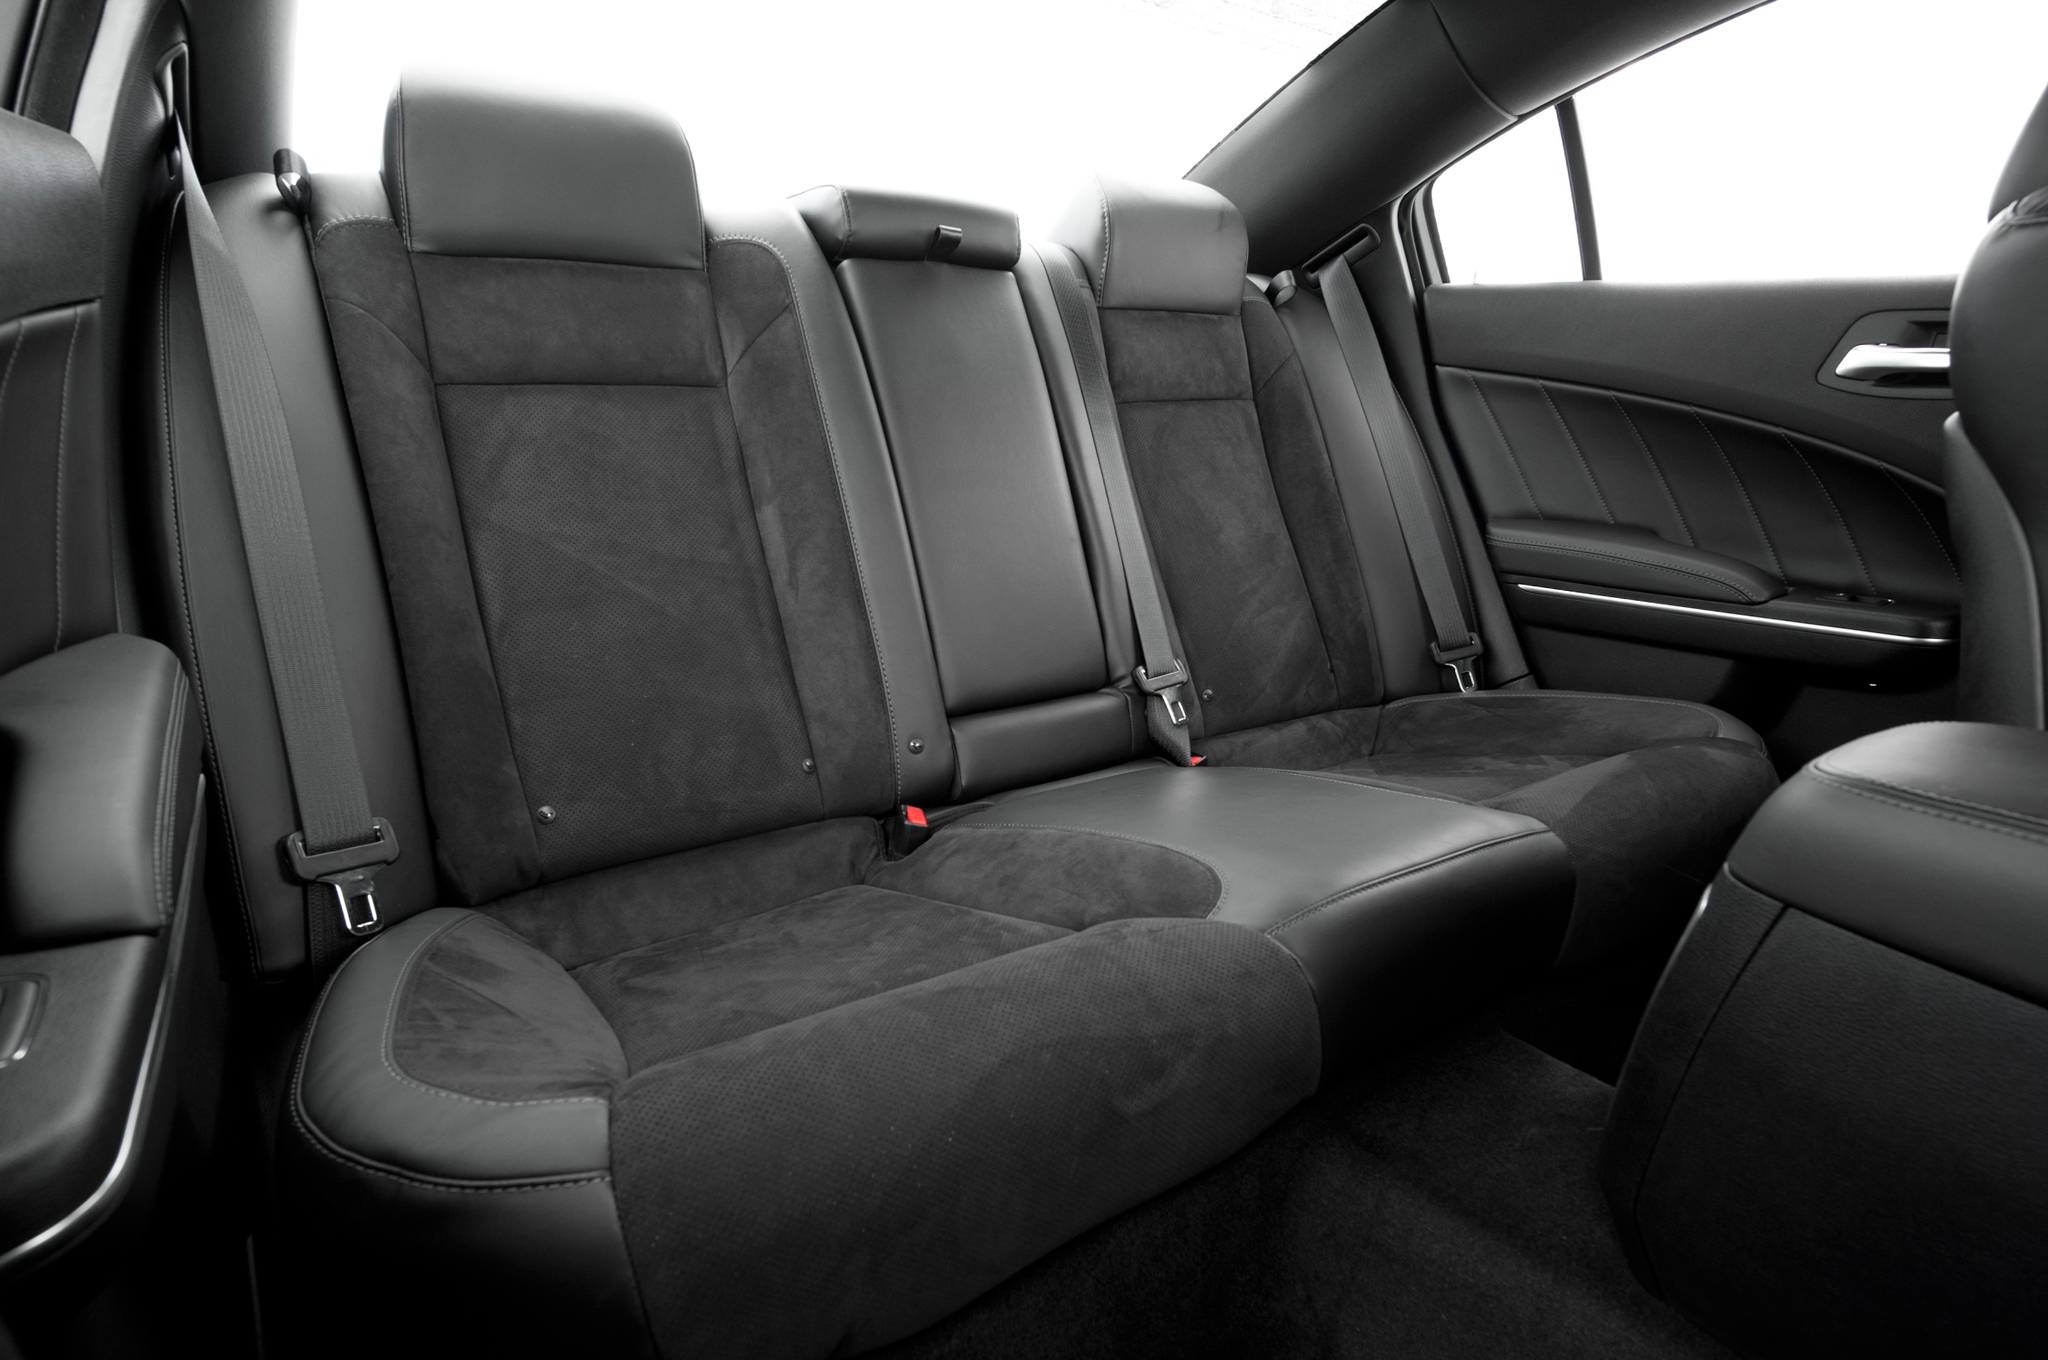 2015 Dodge Charger Rear Interior Seats Photo 39 Of 39